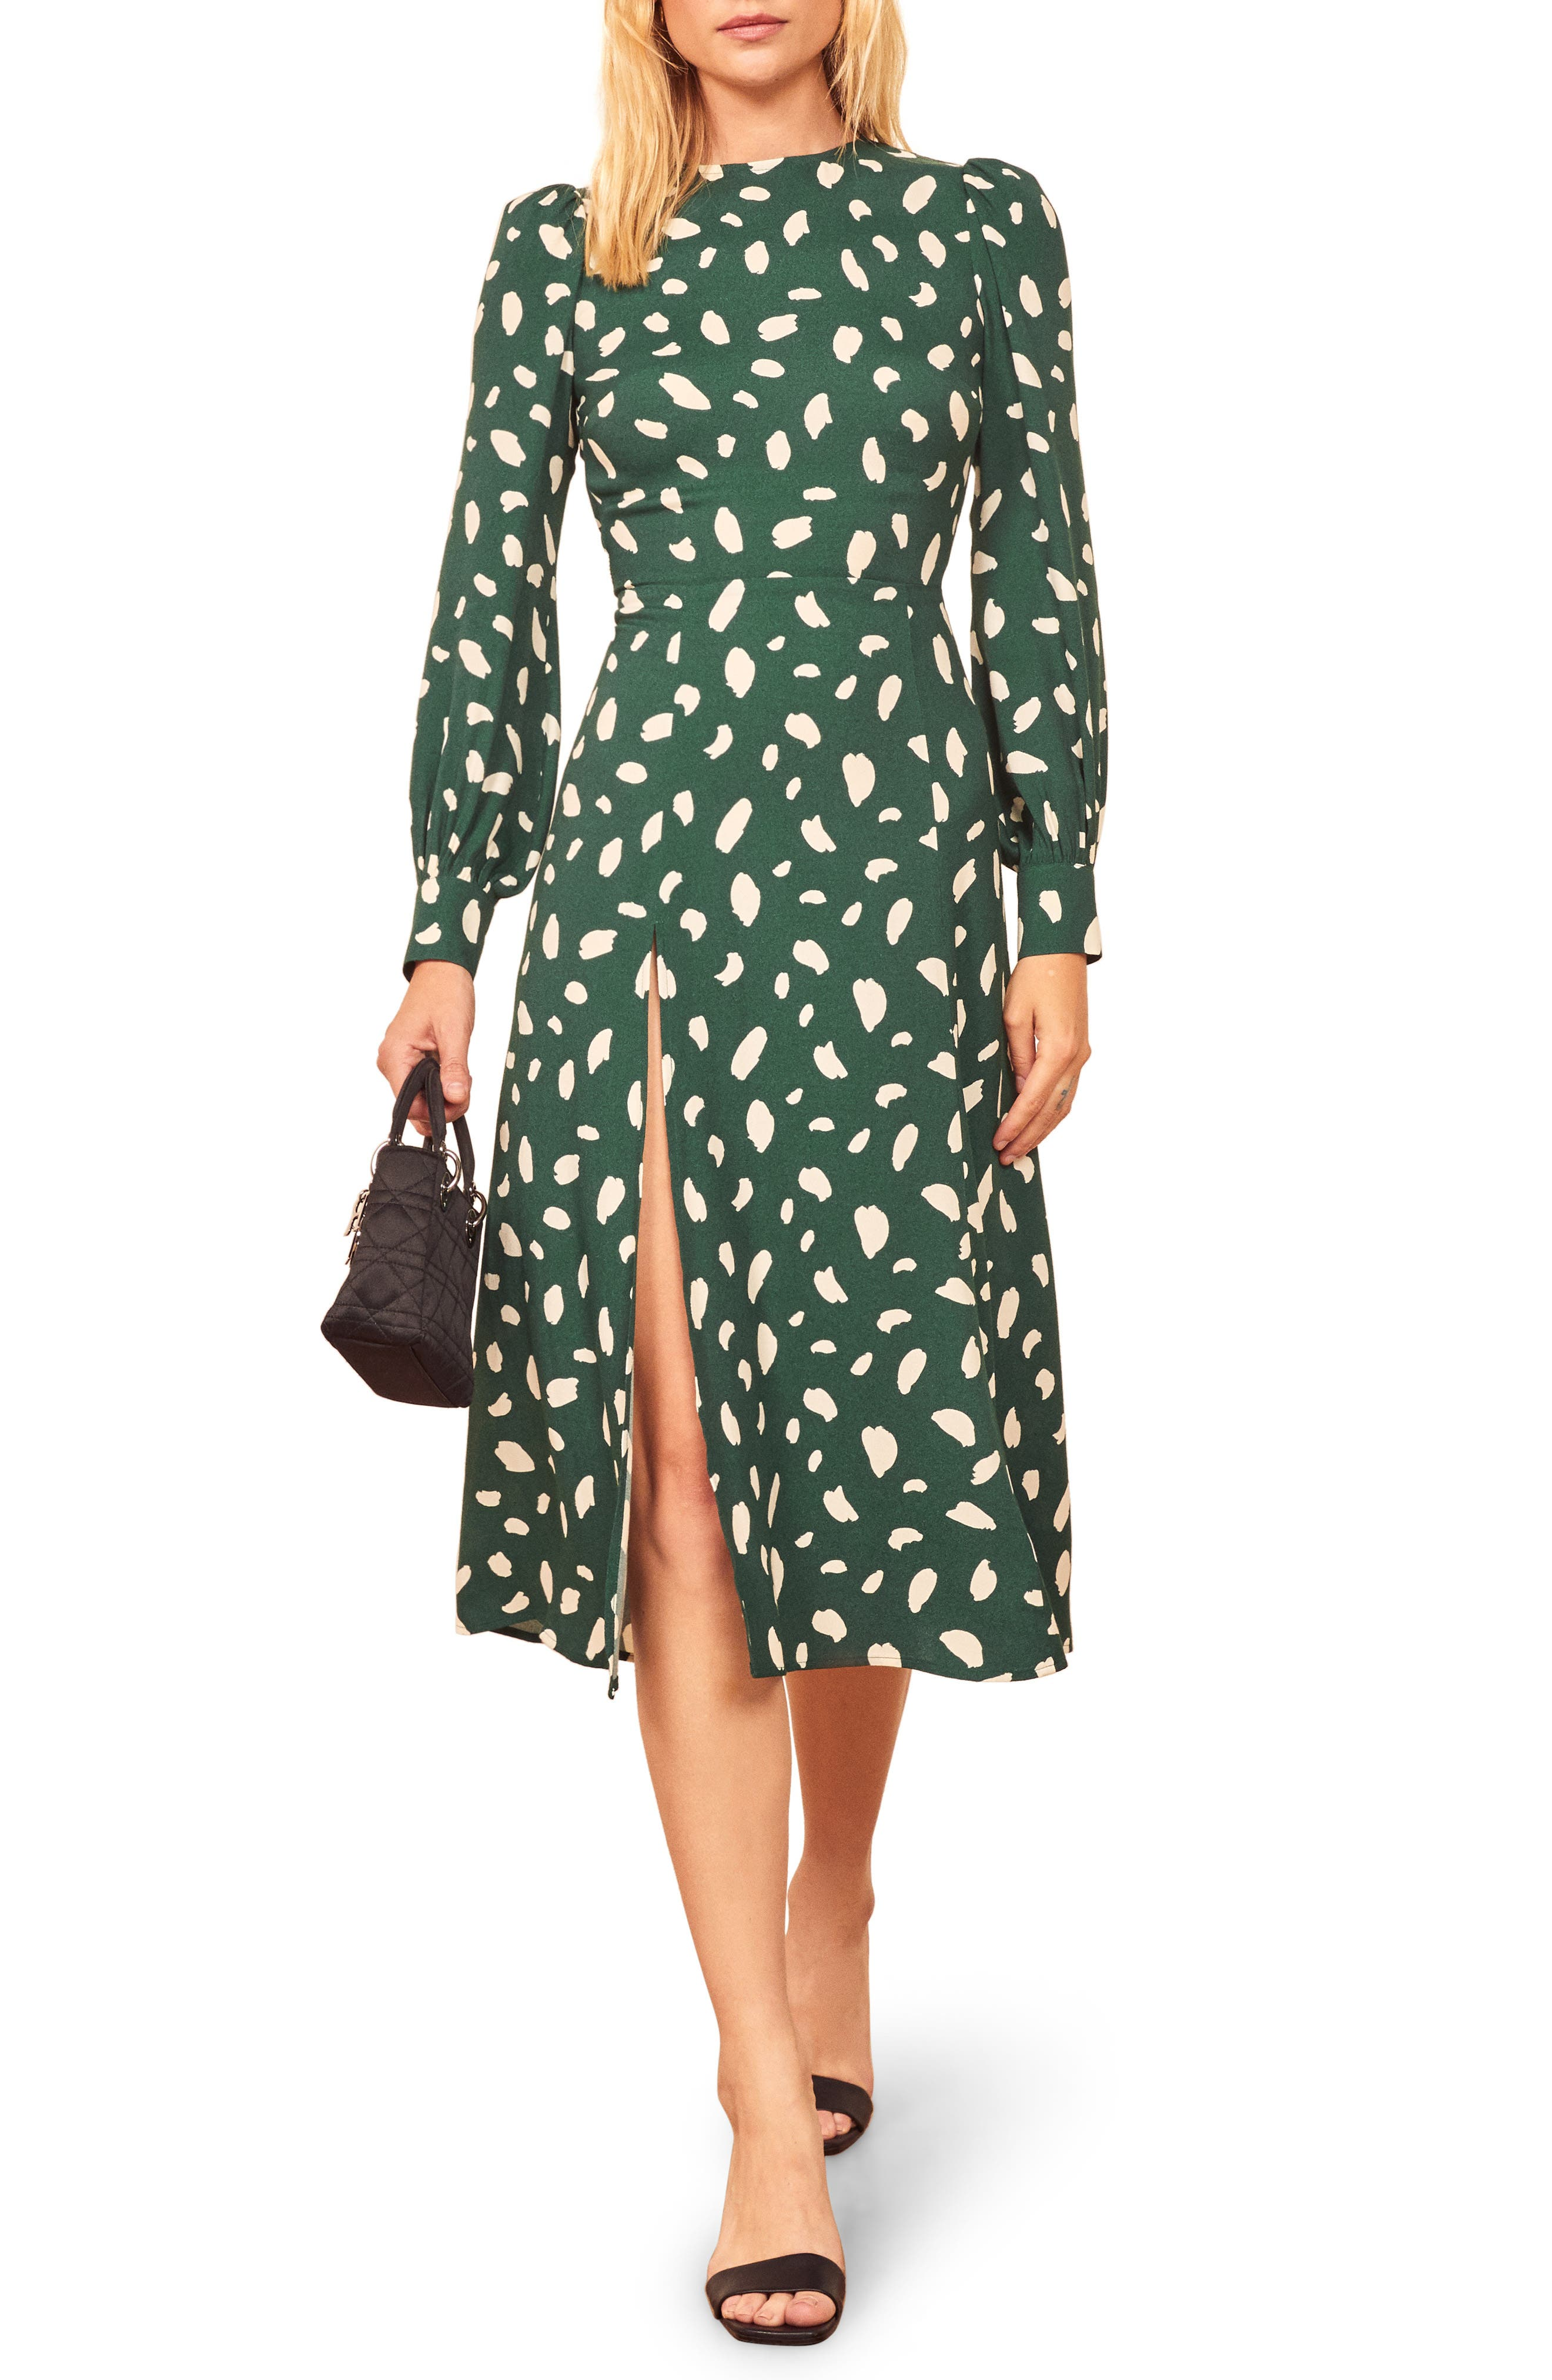 Playful prints brighten this romantic frock, styled with an airy keyhole back and a stem-showing side slit. Style Name: Reformation Creed Print Long Sleeve Midi Dress. Style Number: 5922996. Available in stores.